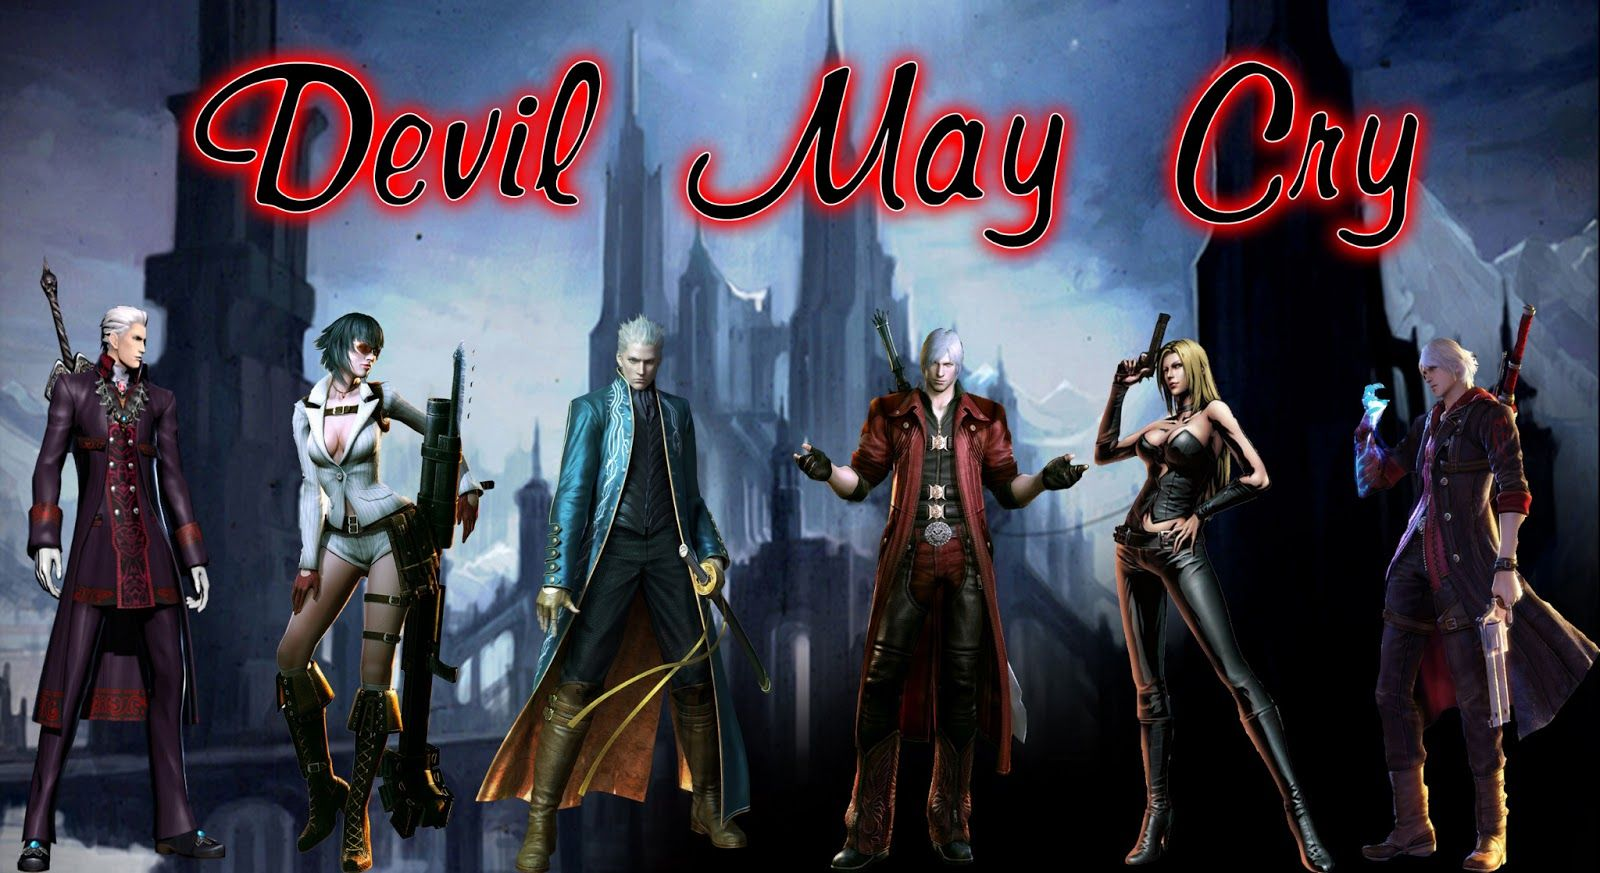 download devil may cry 1 pc game full version